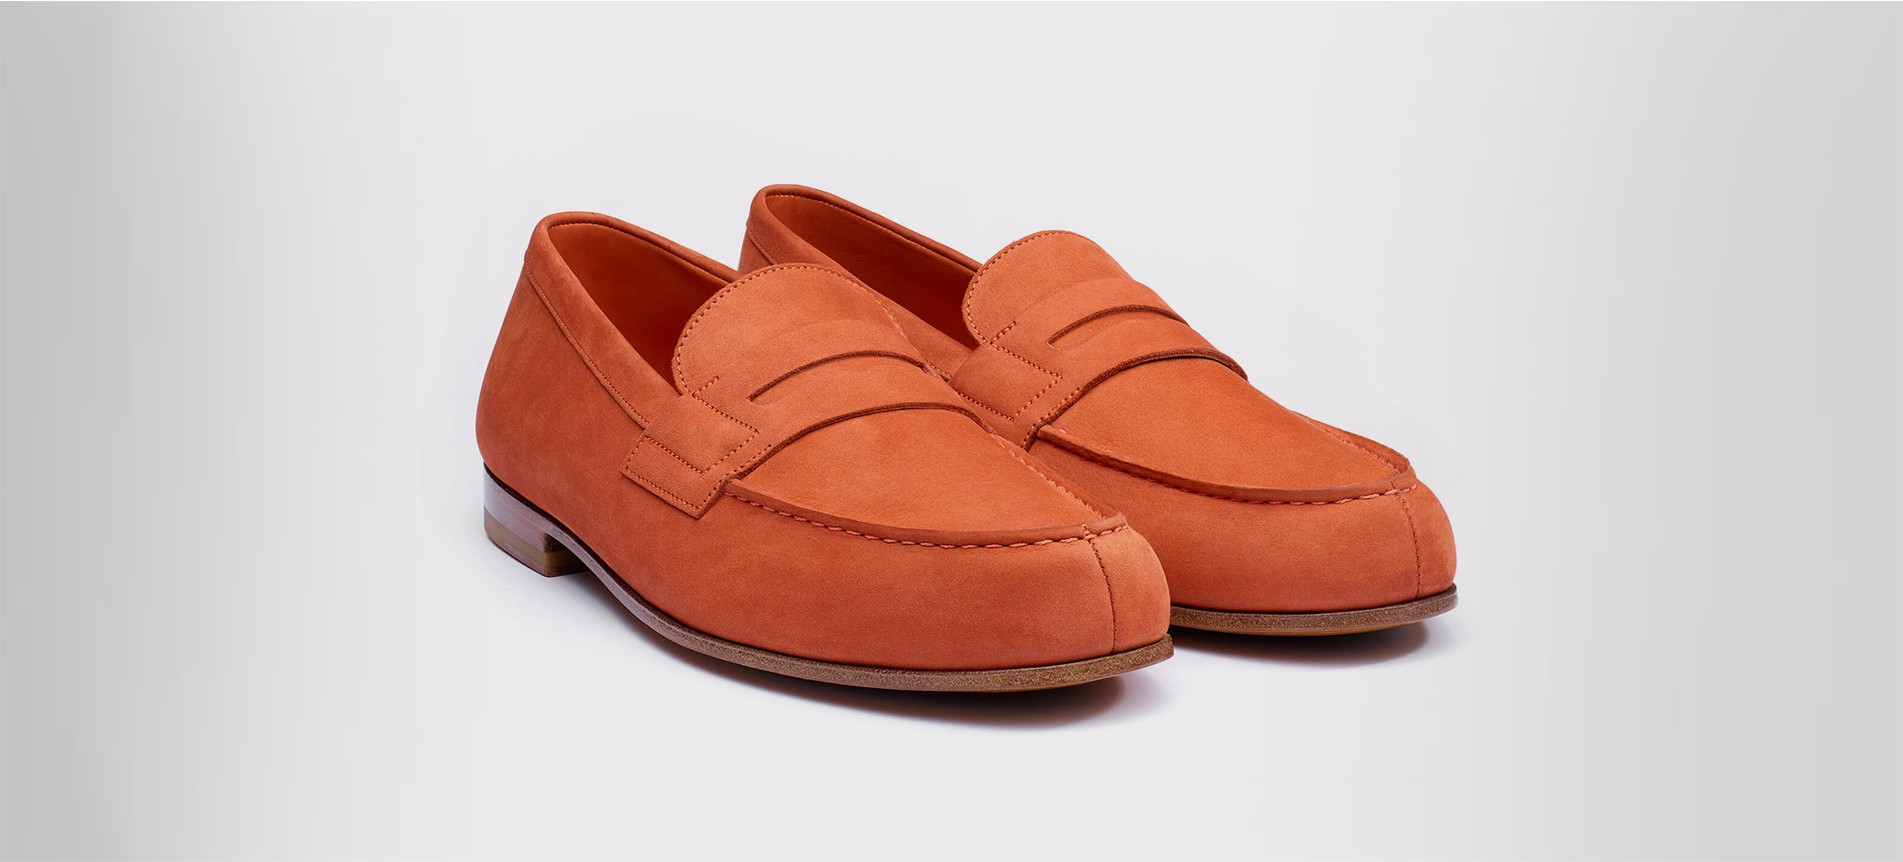 super mignon 1fa77 55421 Le Moc' Nubuck orange - Mocassins J.M. Weston